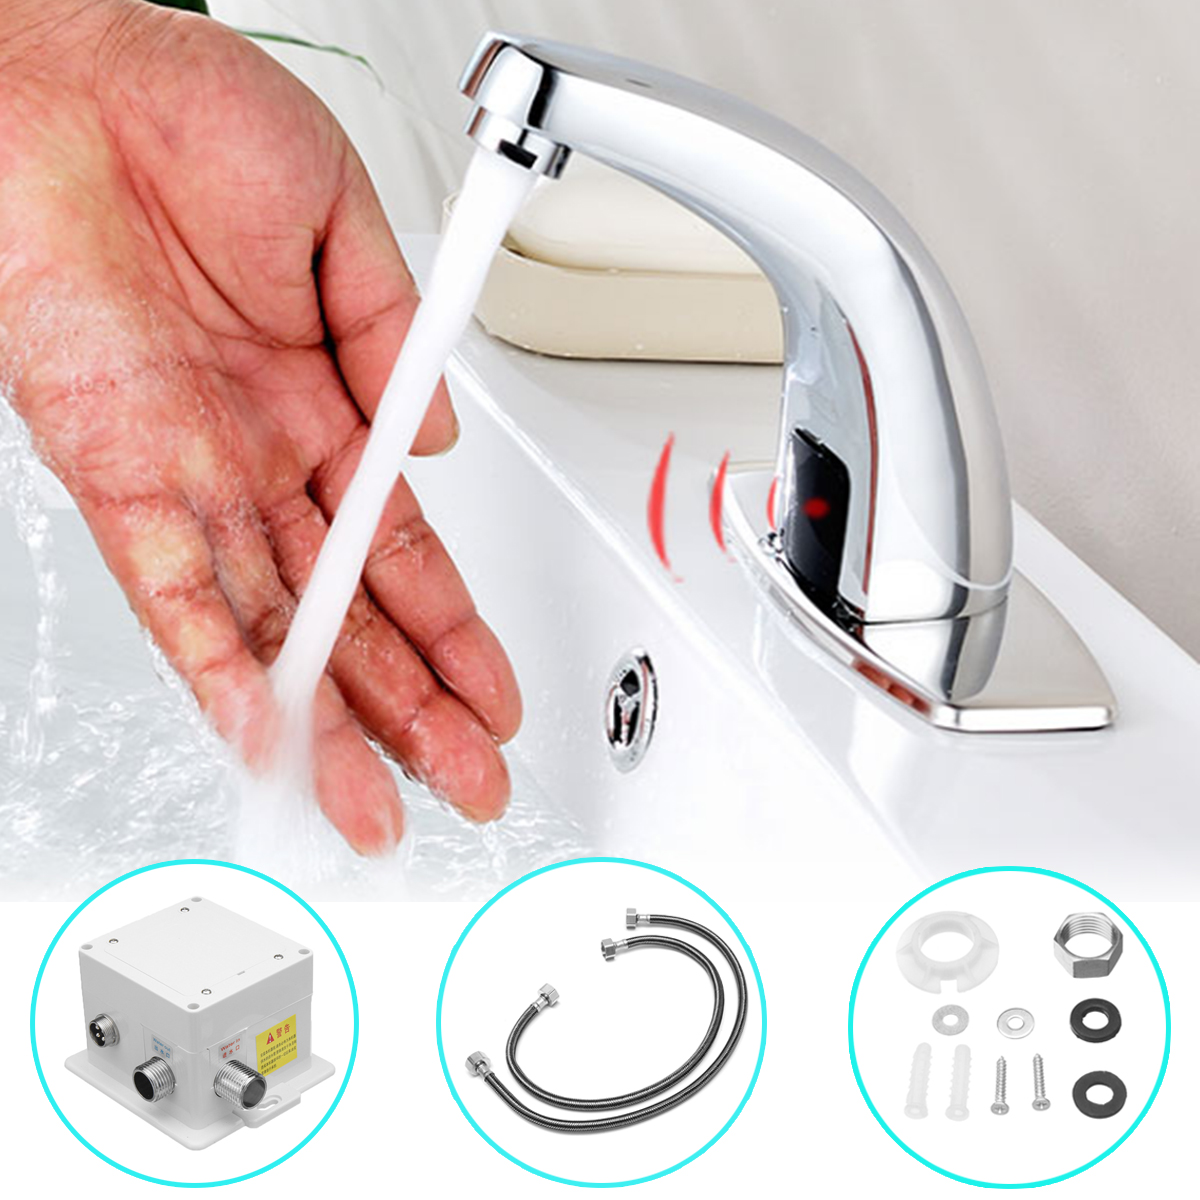 купить Bathroom Automatic Infrared Sink Hands Touchless Free Faucet Sensor Tap Cold Water Saving Inductive Electric Basin Faucet Mixer по цене 1686.34 рублей